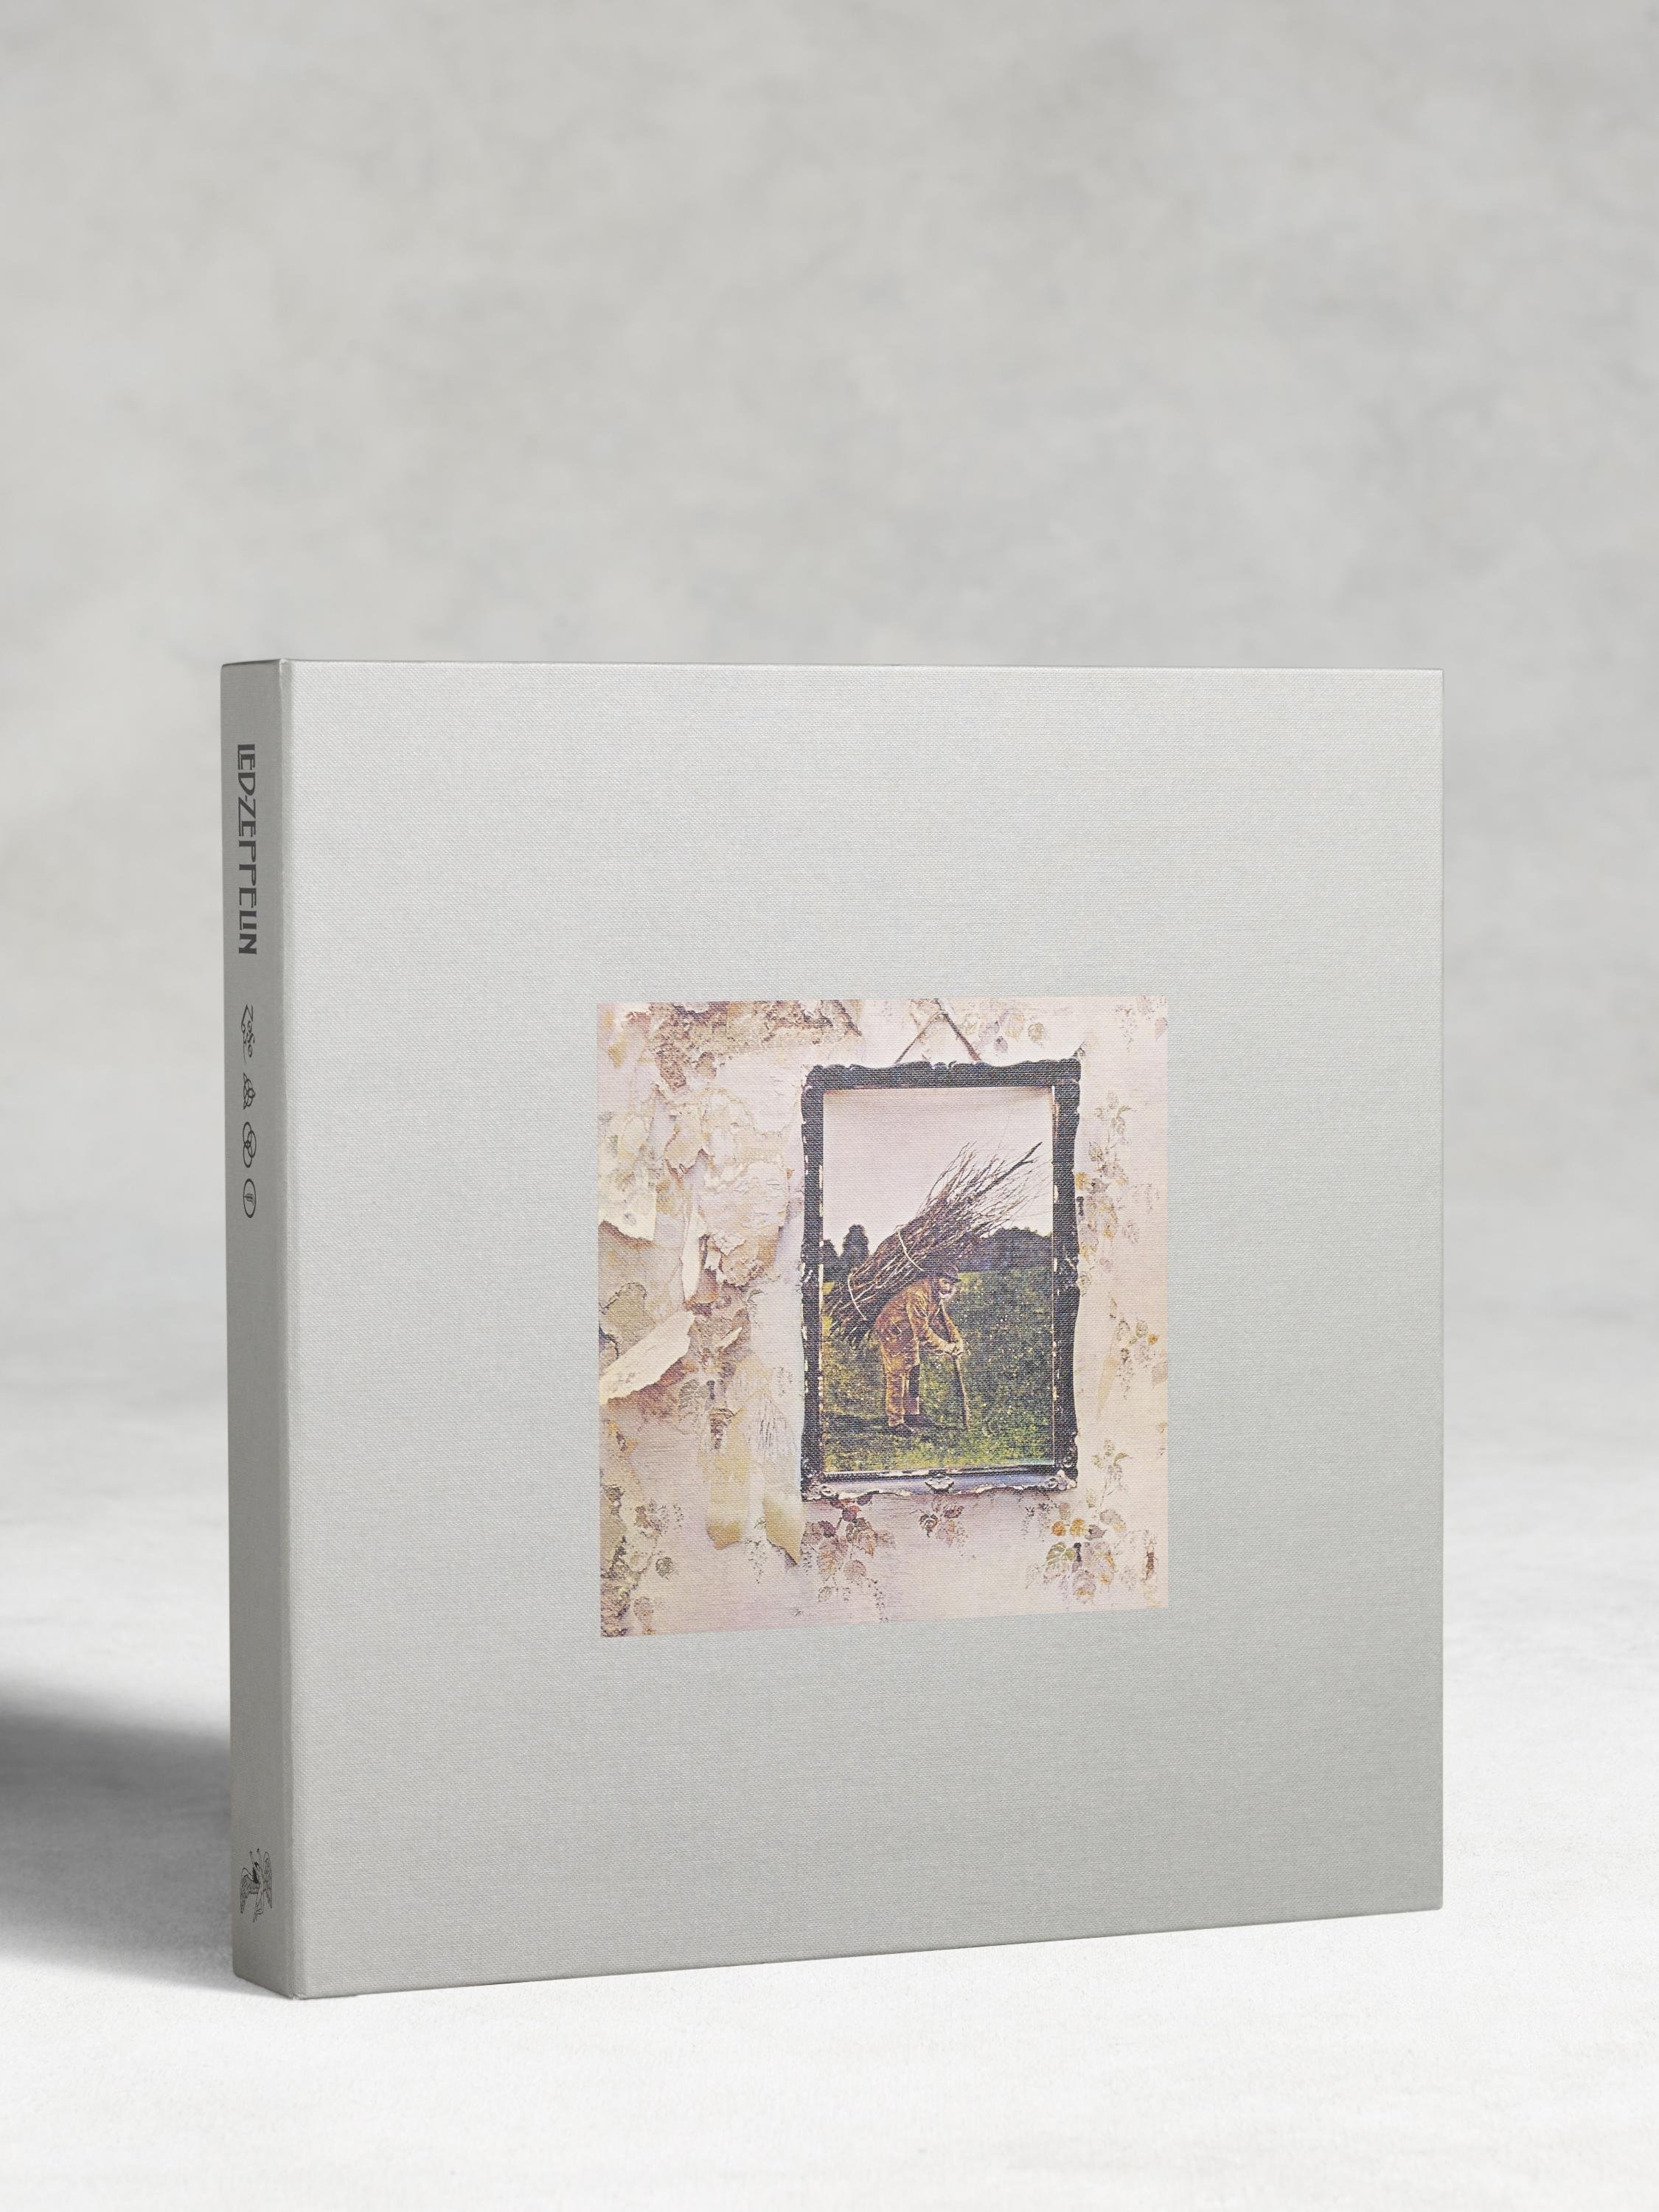 Led Zeppelin - Led Zeppelin IV Box Set